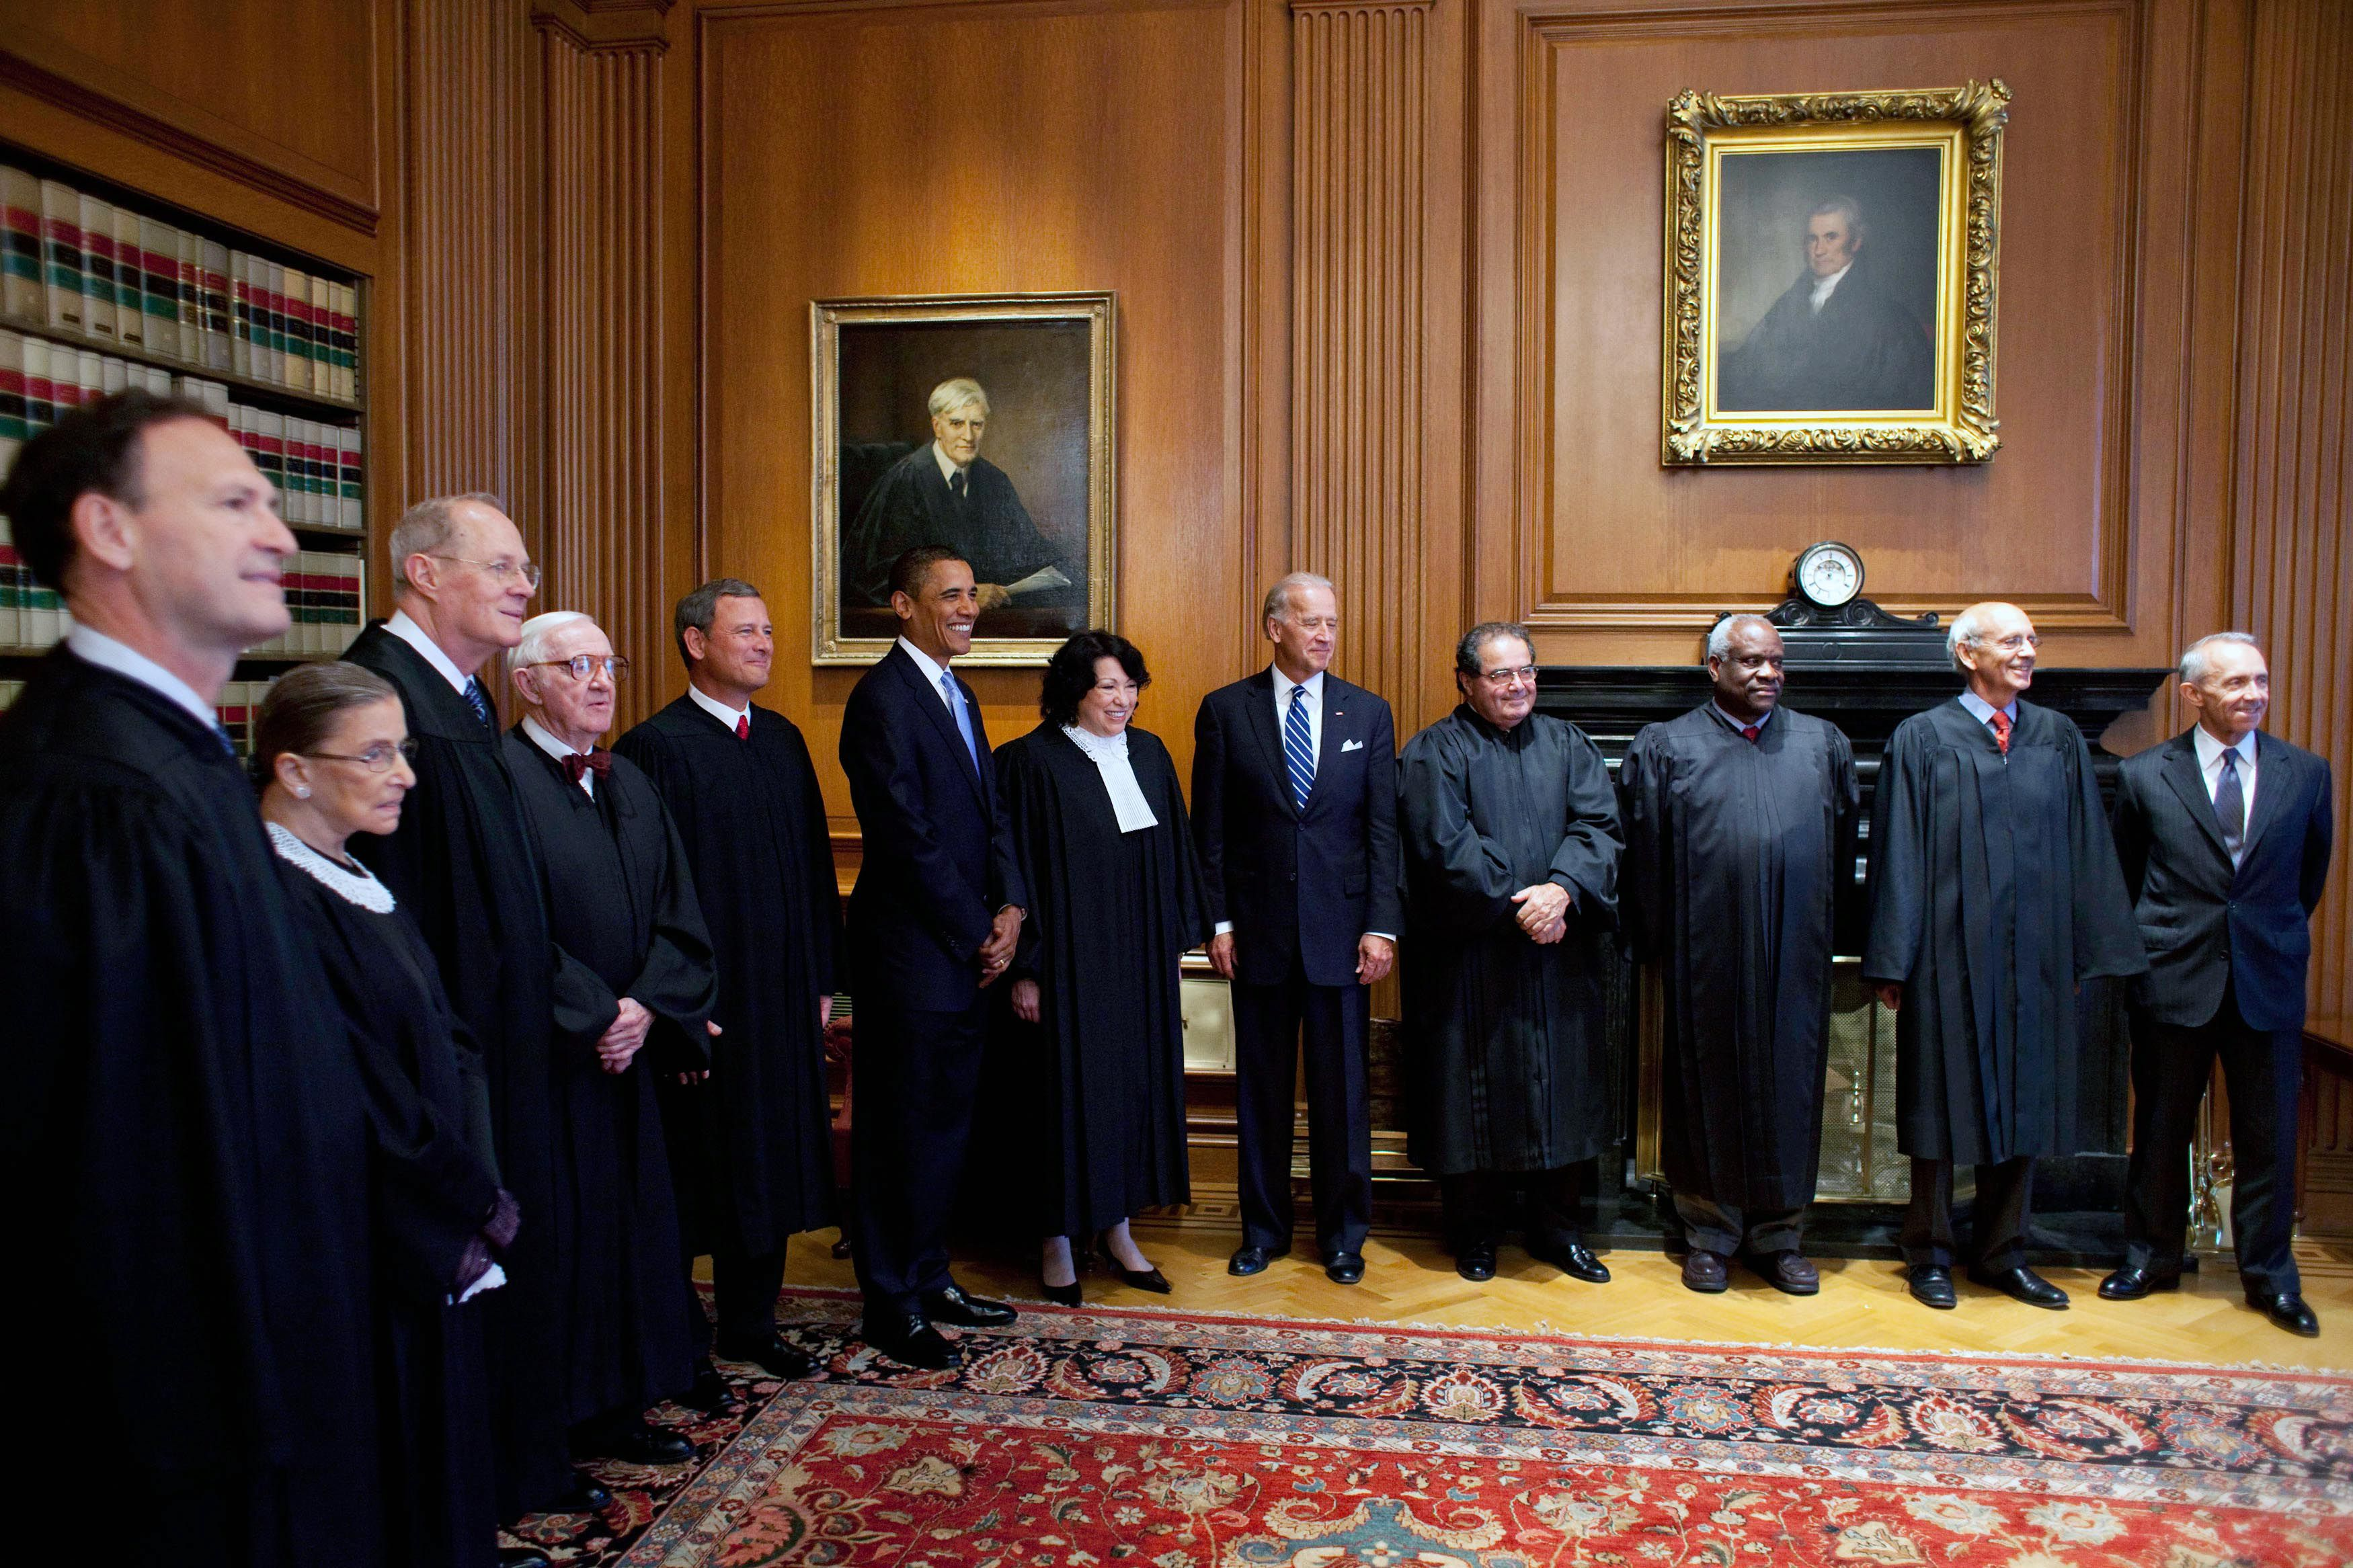 The members of the Supreme Court meet with President Obama in 2009, prior to Justice Sonia Sotomayor's swearing-in.